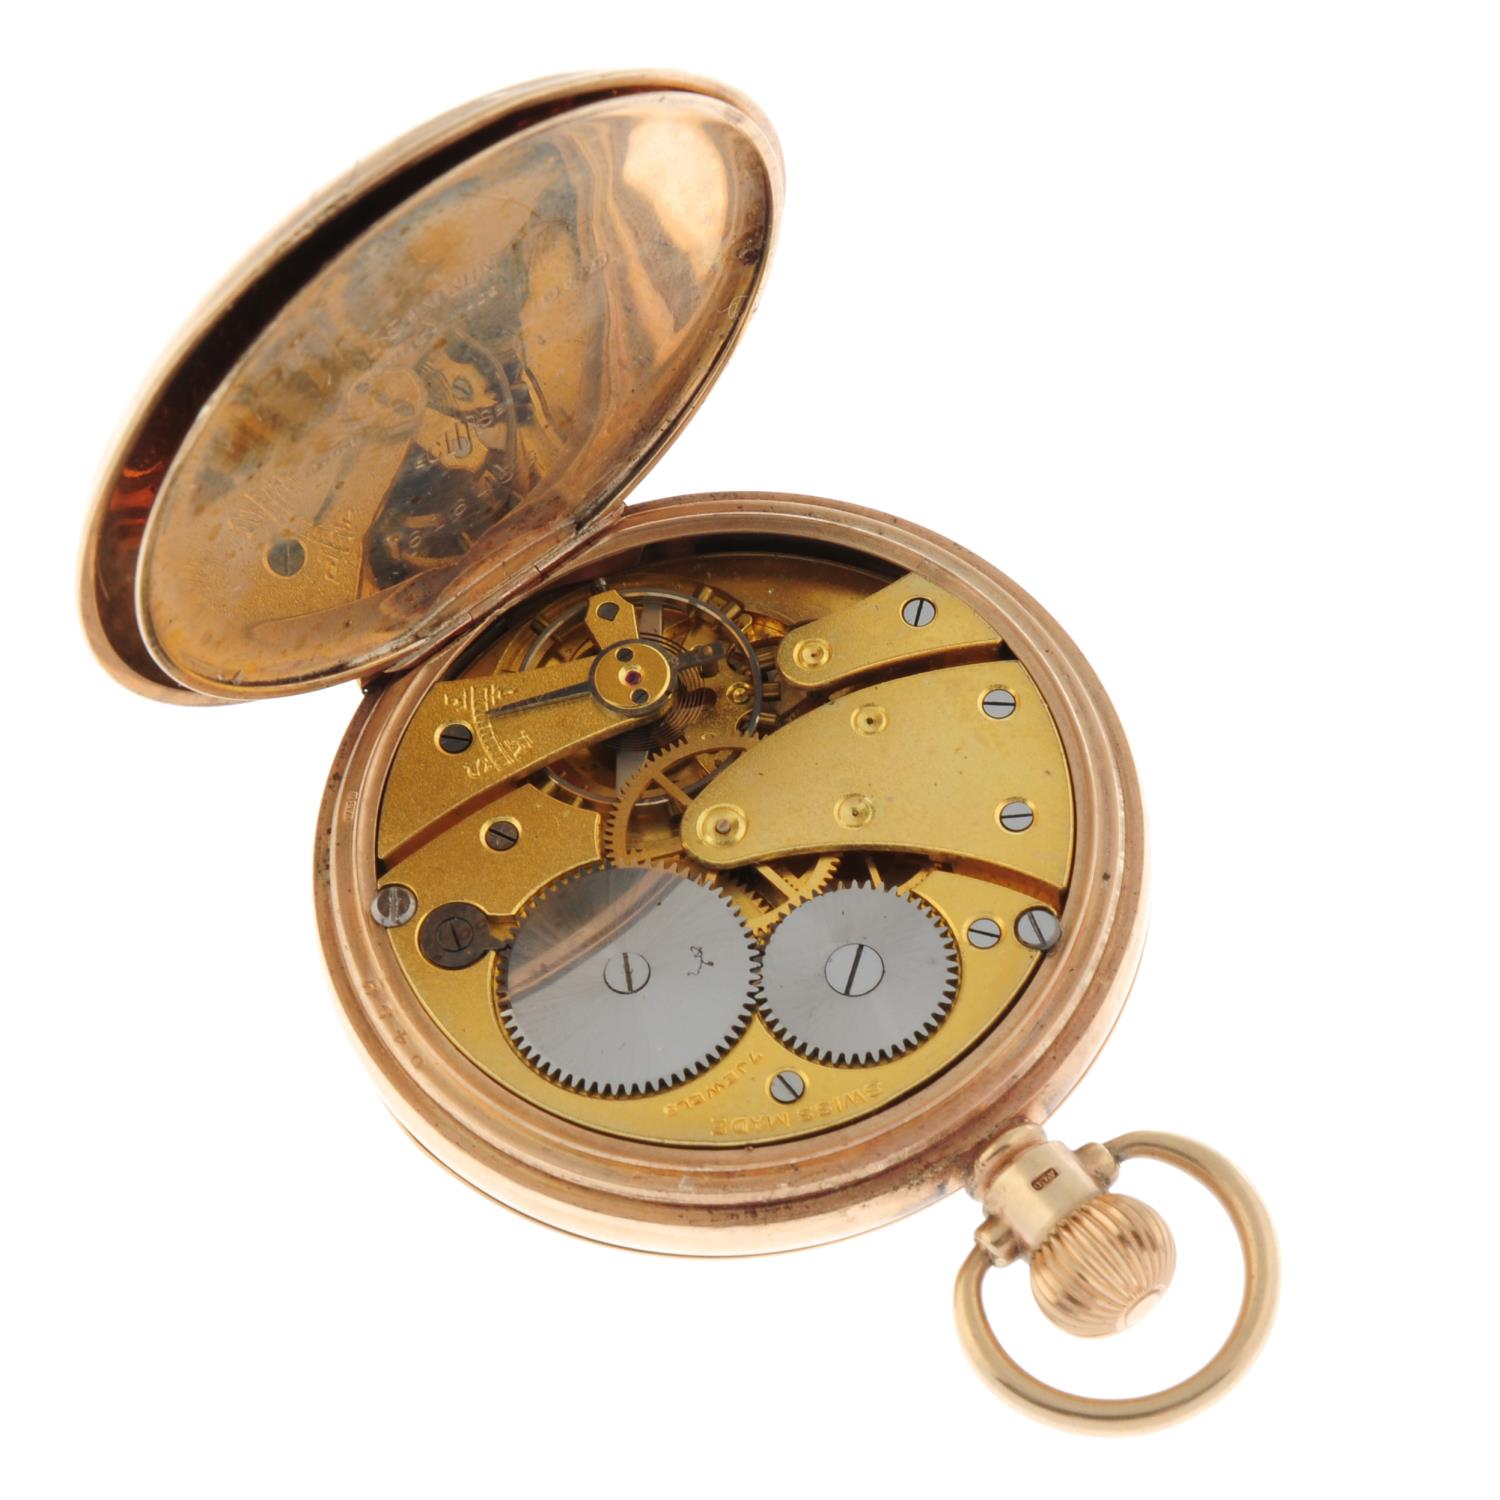 A full hunter pocket watch by Federal. - Image 4 of 4